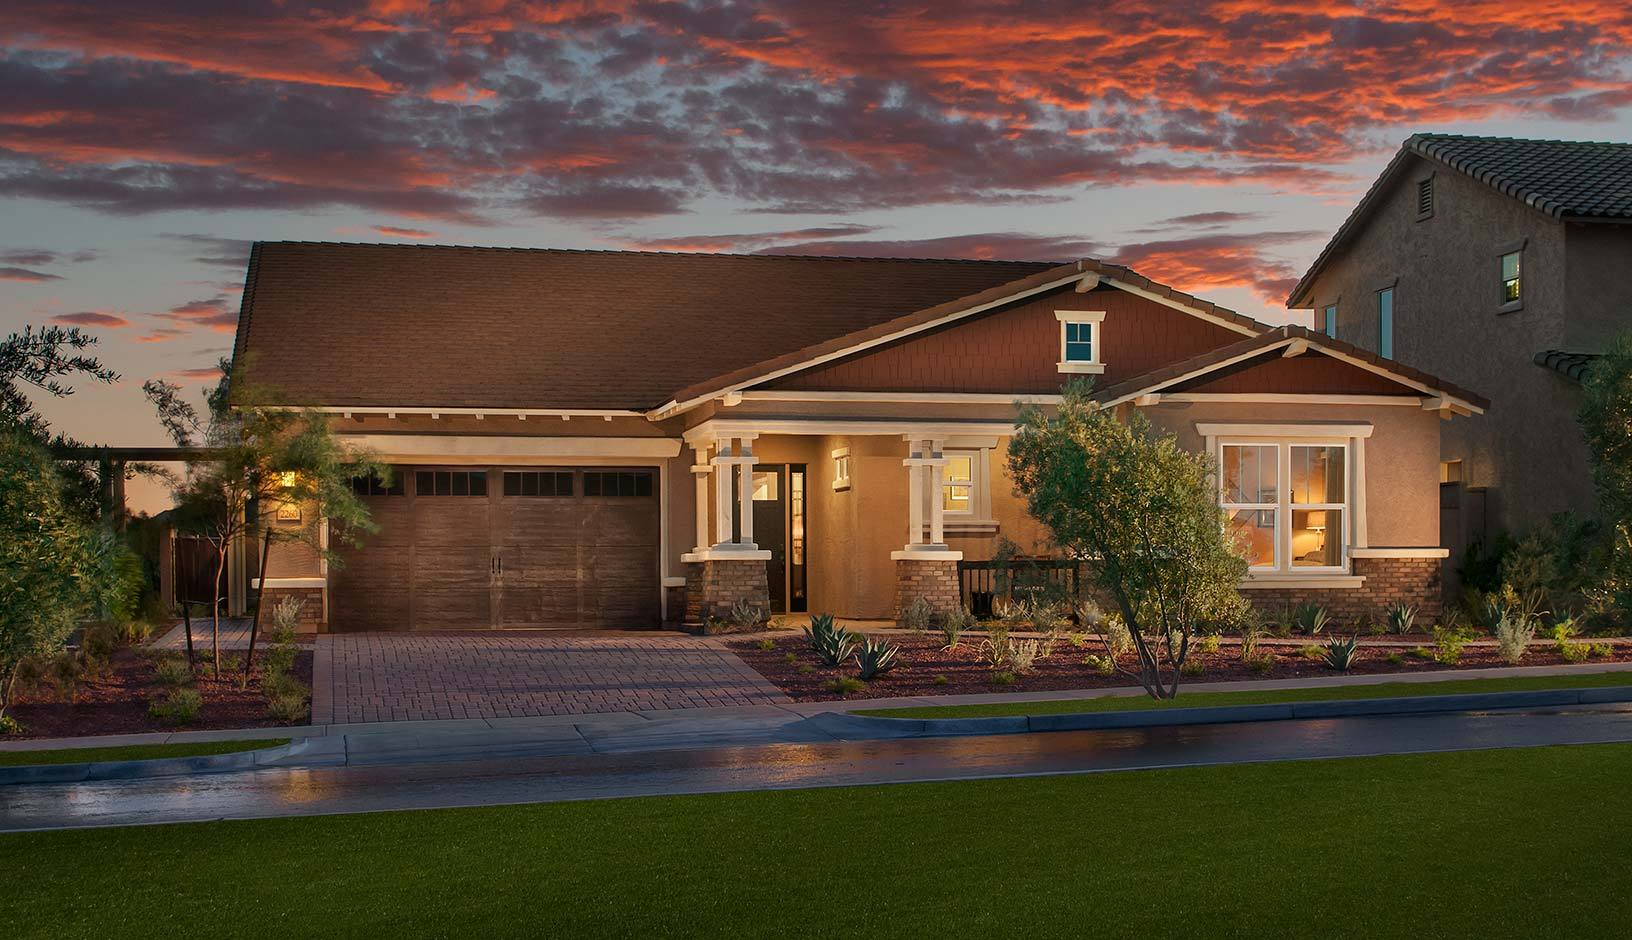 Verrado palisades new homes in buckeye az by maracay homes for Verrado home builders